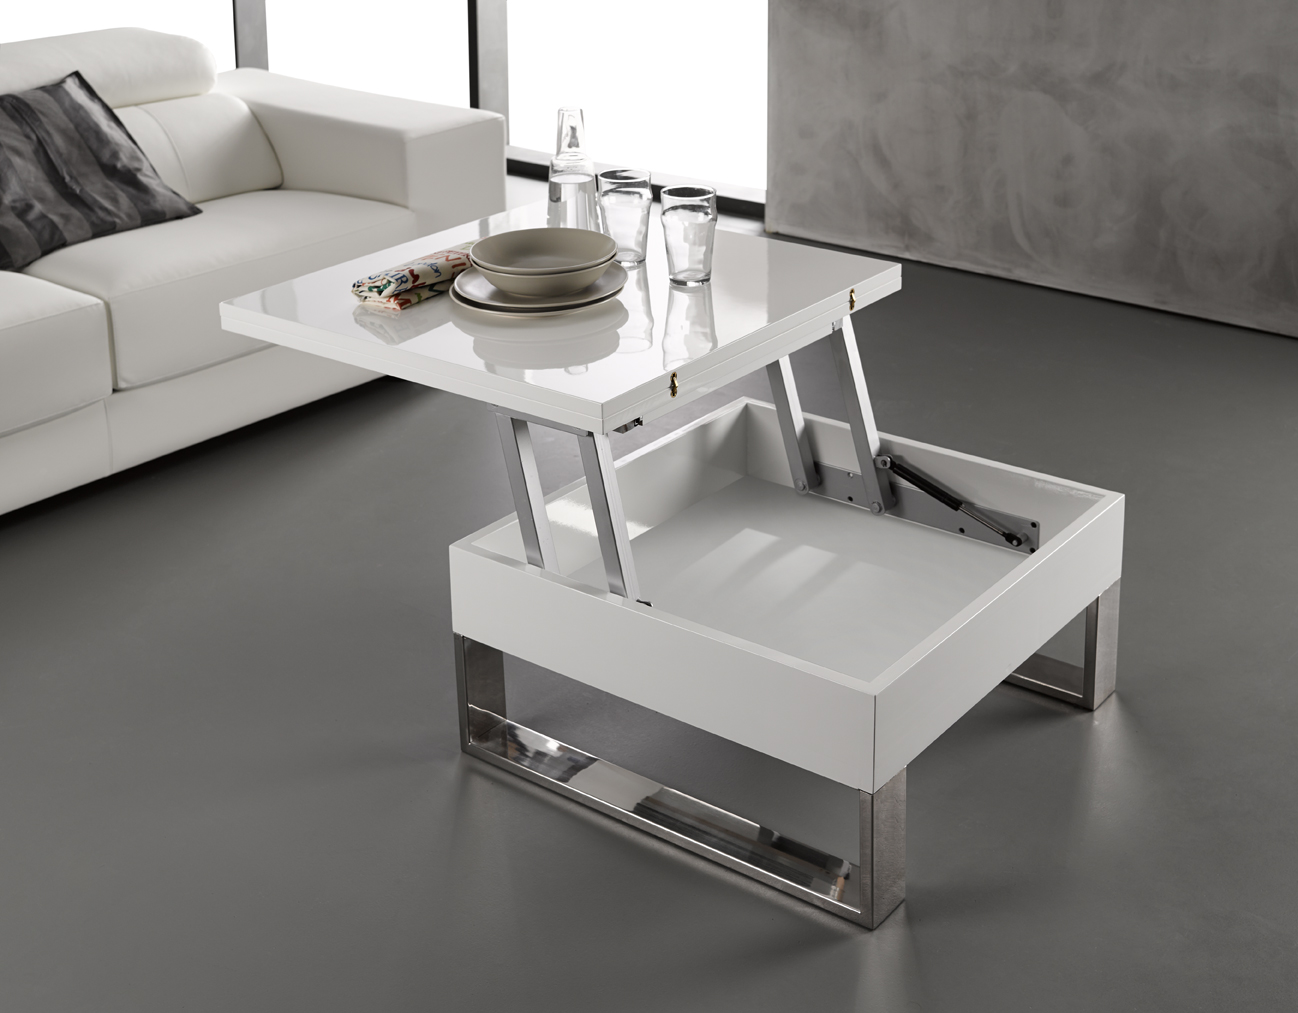 Model etable salon moderne - Model de salon moderne ...